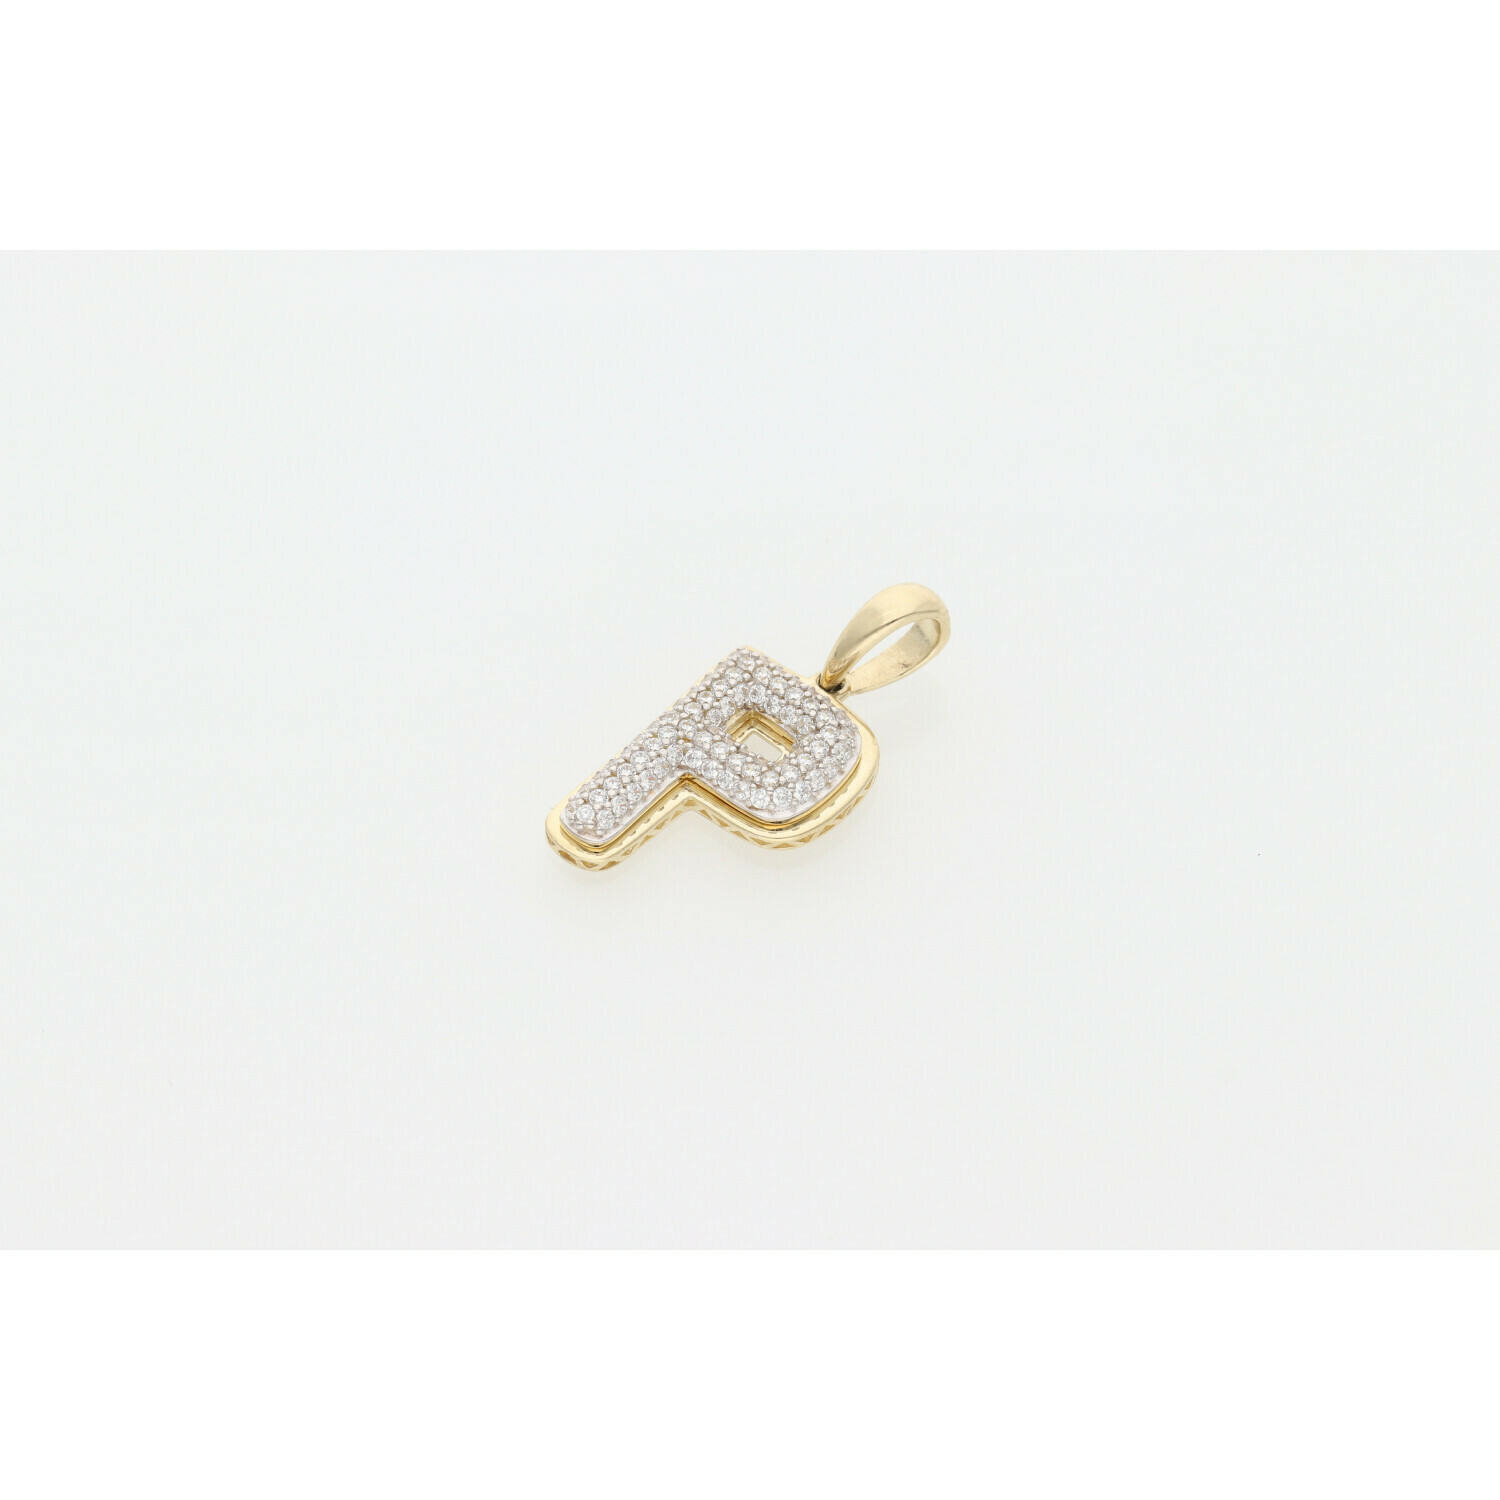 10 Karat Gold & Zirconium Letter Fancy Bubble